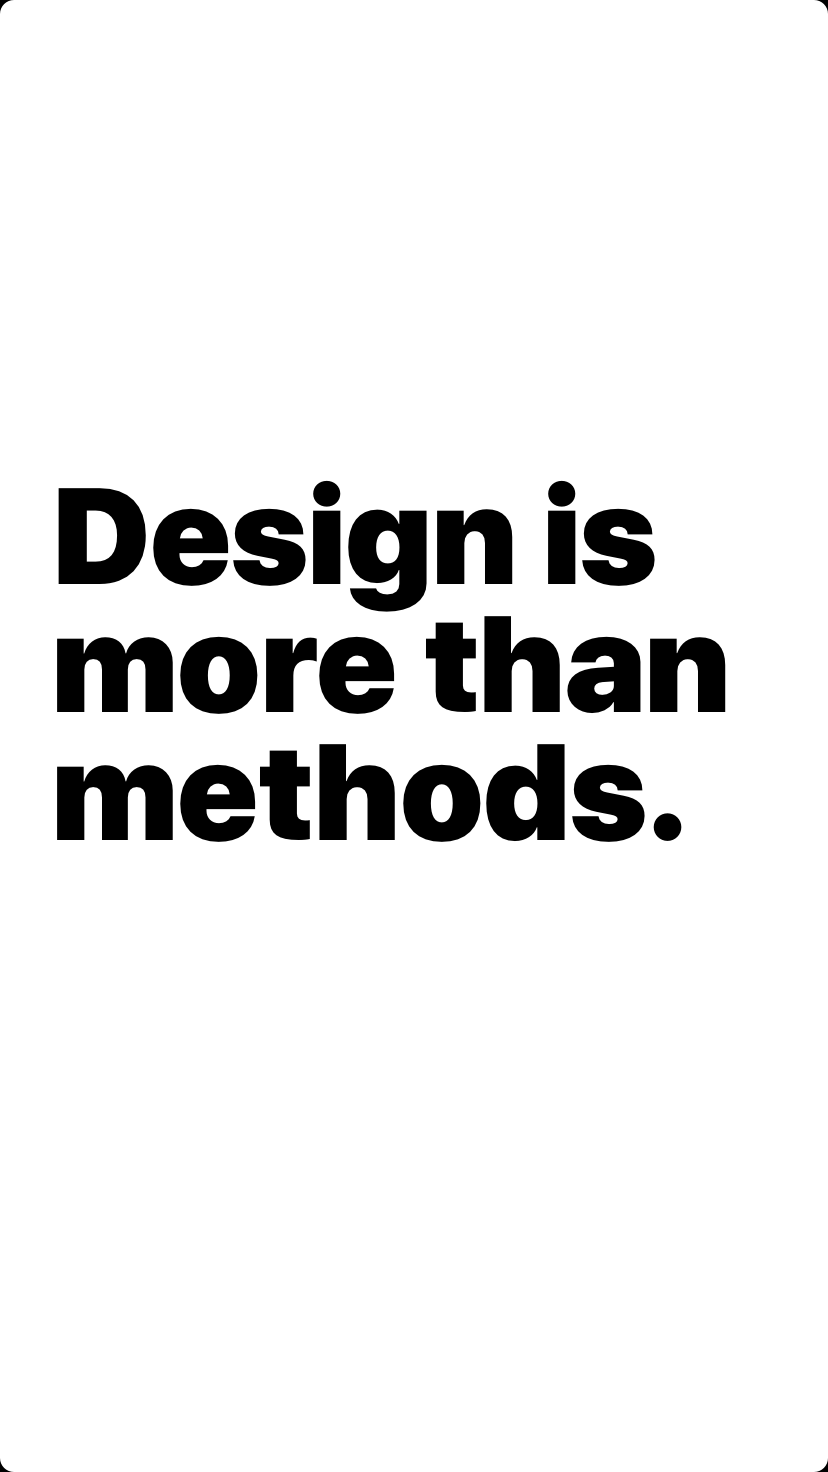 Design is more than methods.